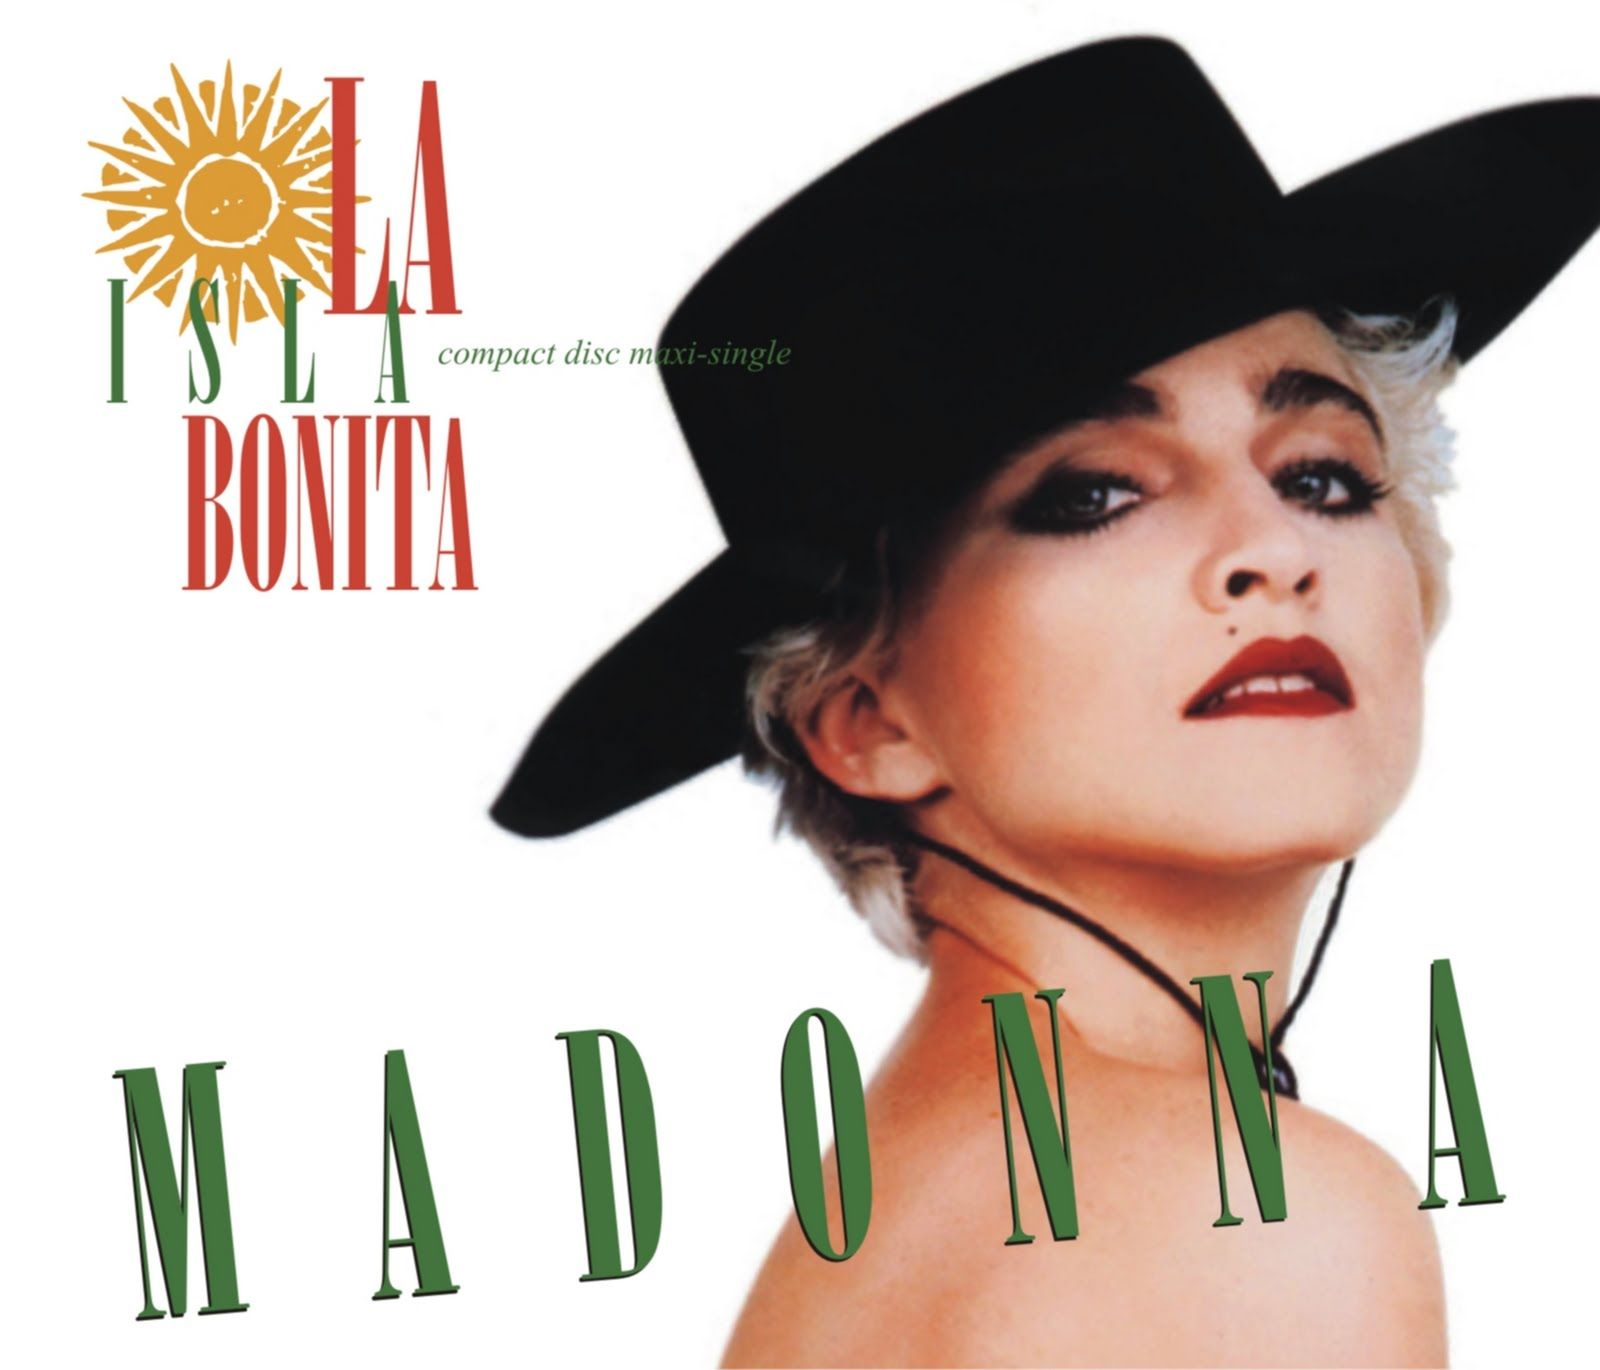 La Isla Bonita Single 1986 Madonna Madonna Videos Album Covers